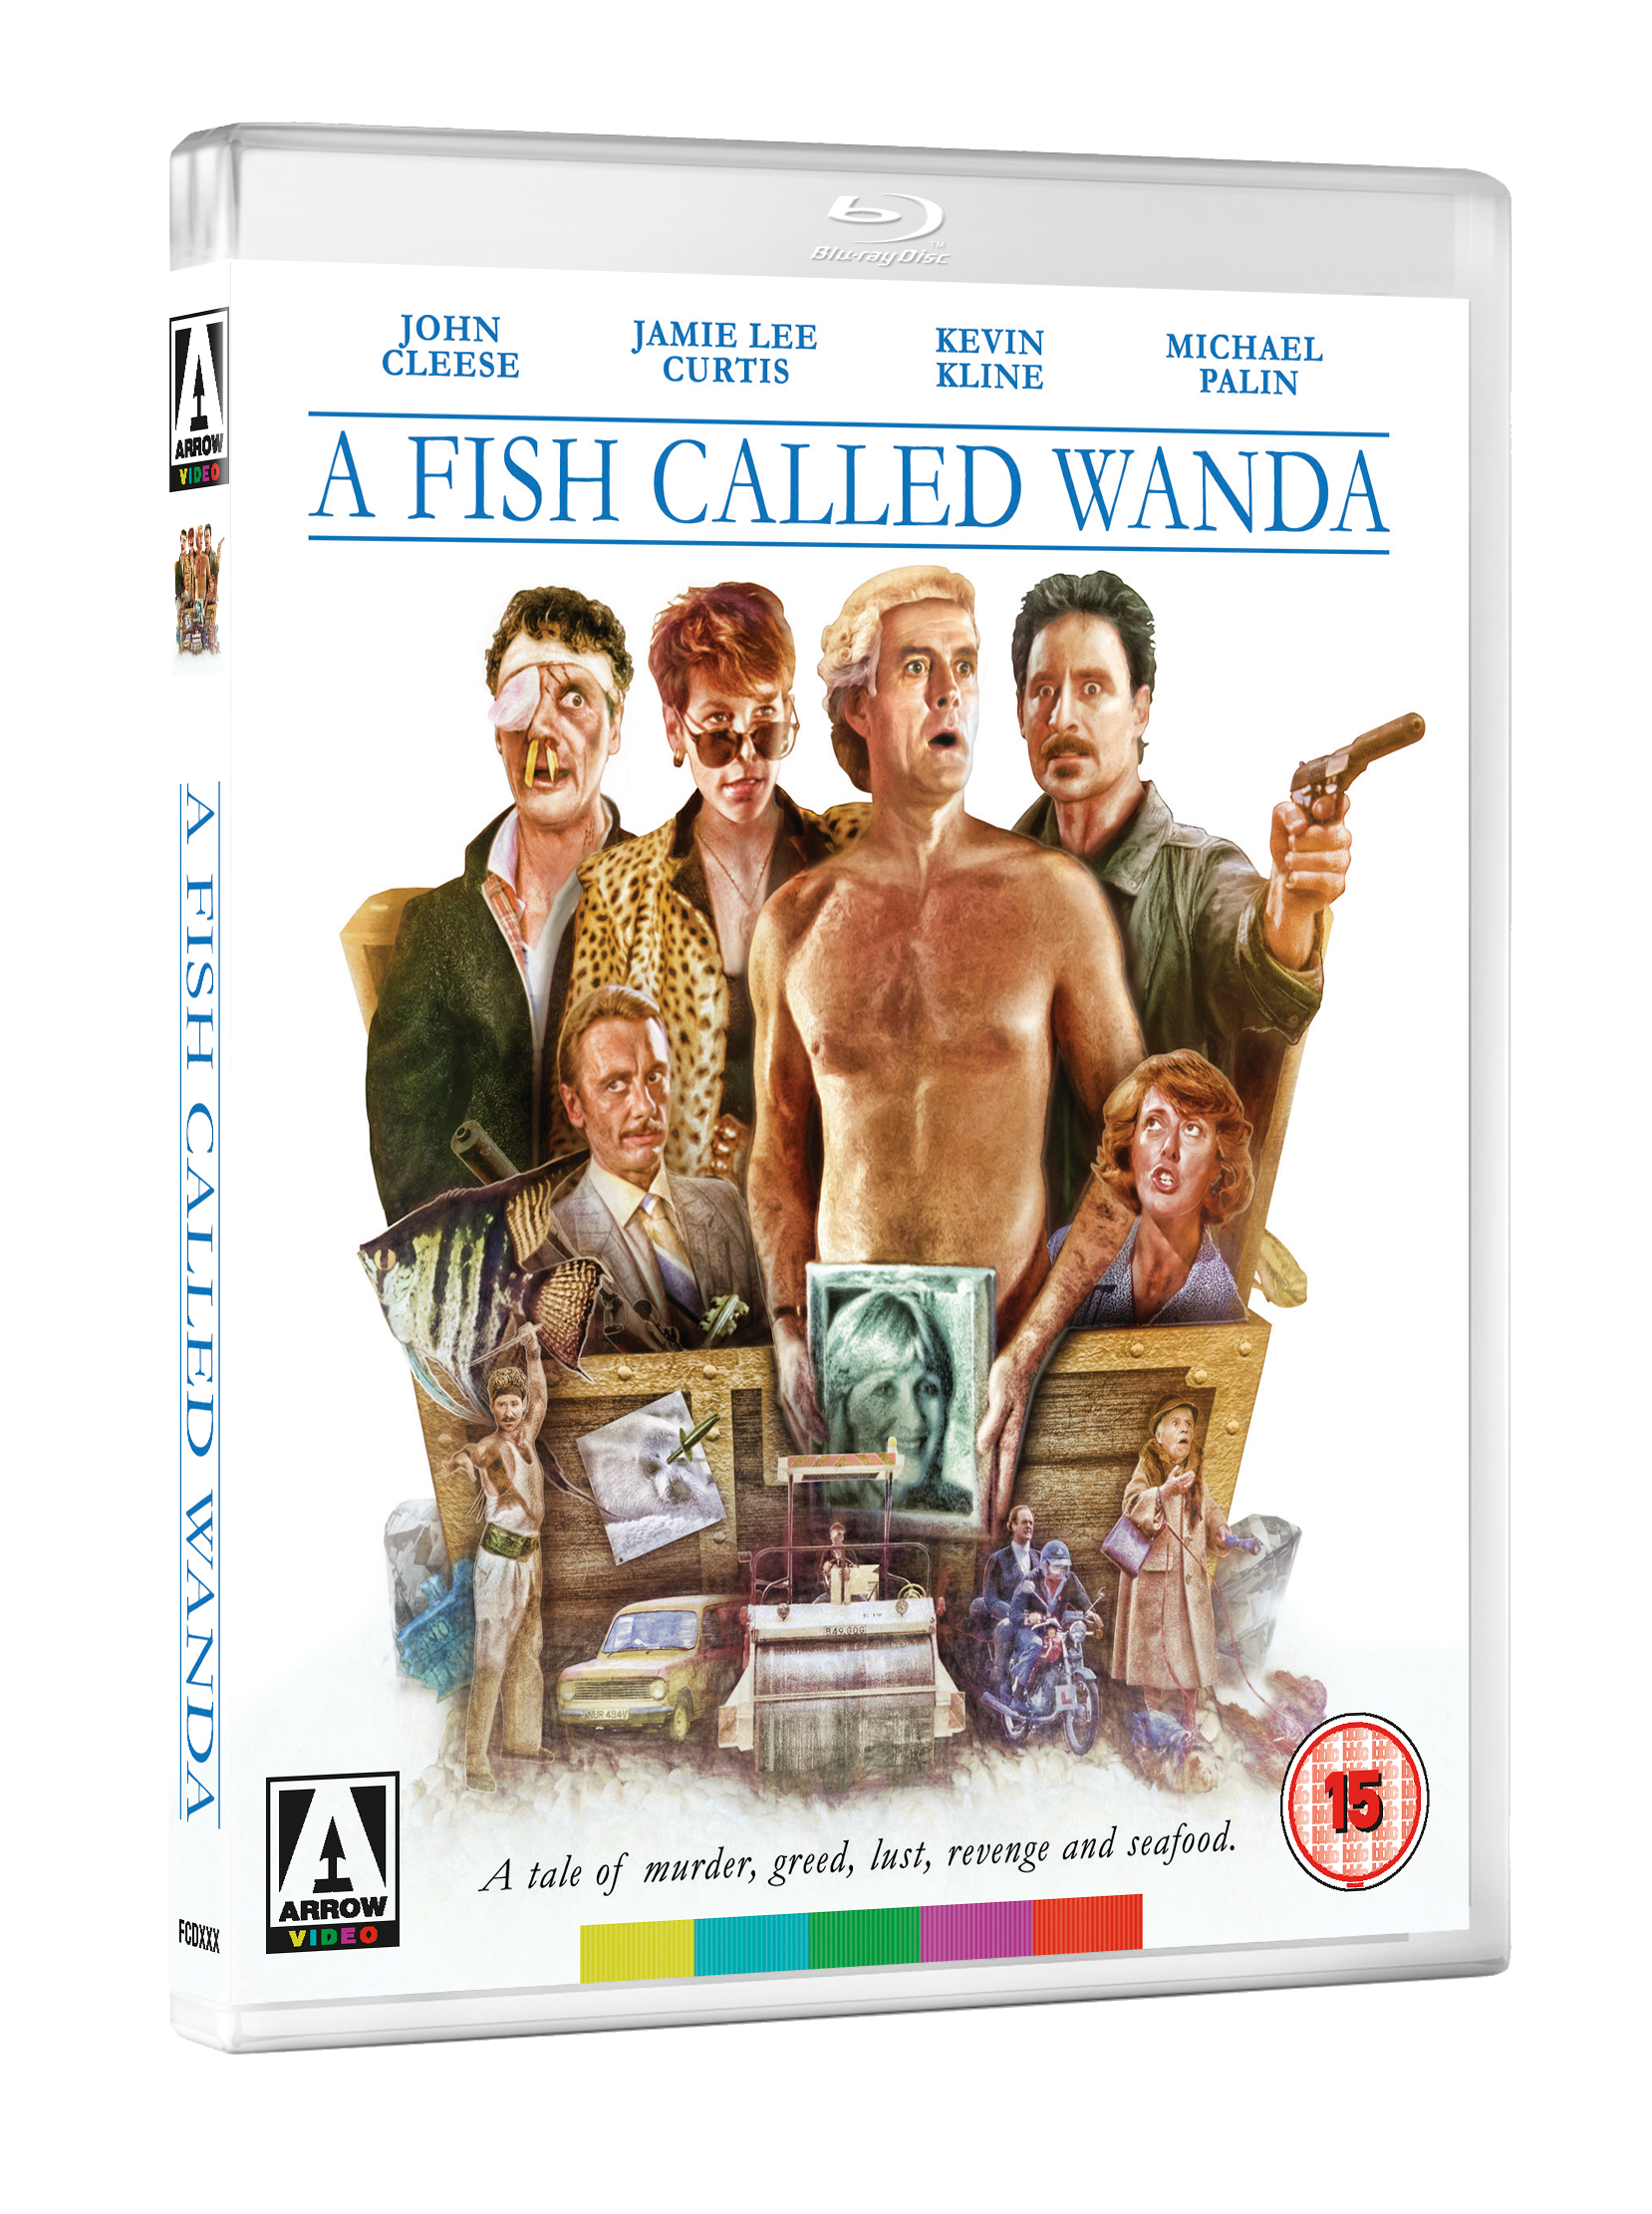 A FISH CALLED WANDA 3D BD September 2017 line up announced by Arrow Video